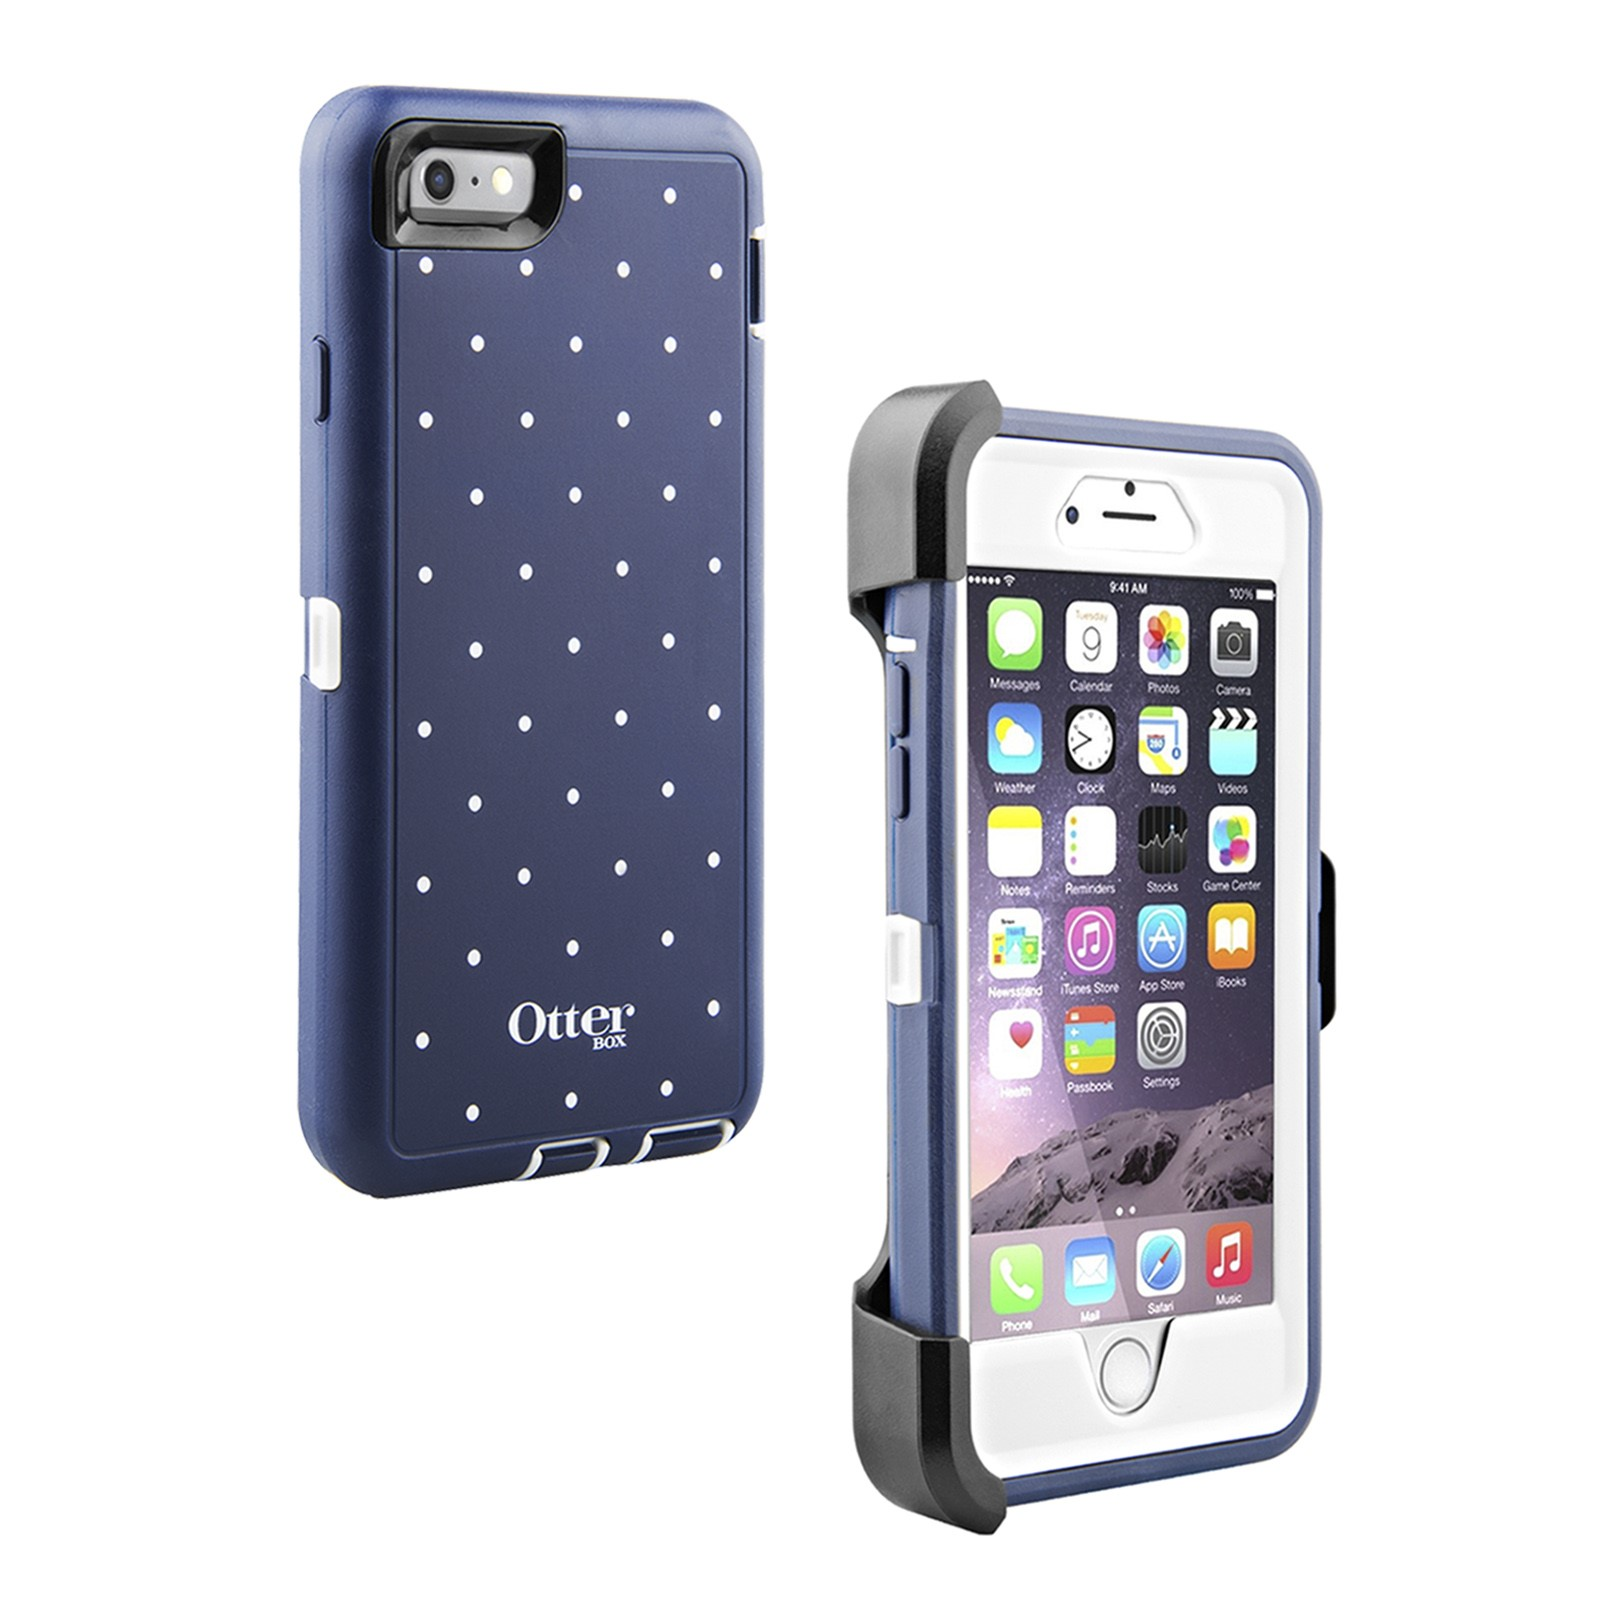 walmart otterbox iphone 6 otterbox defender series for iphone 6 walmart 16446